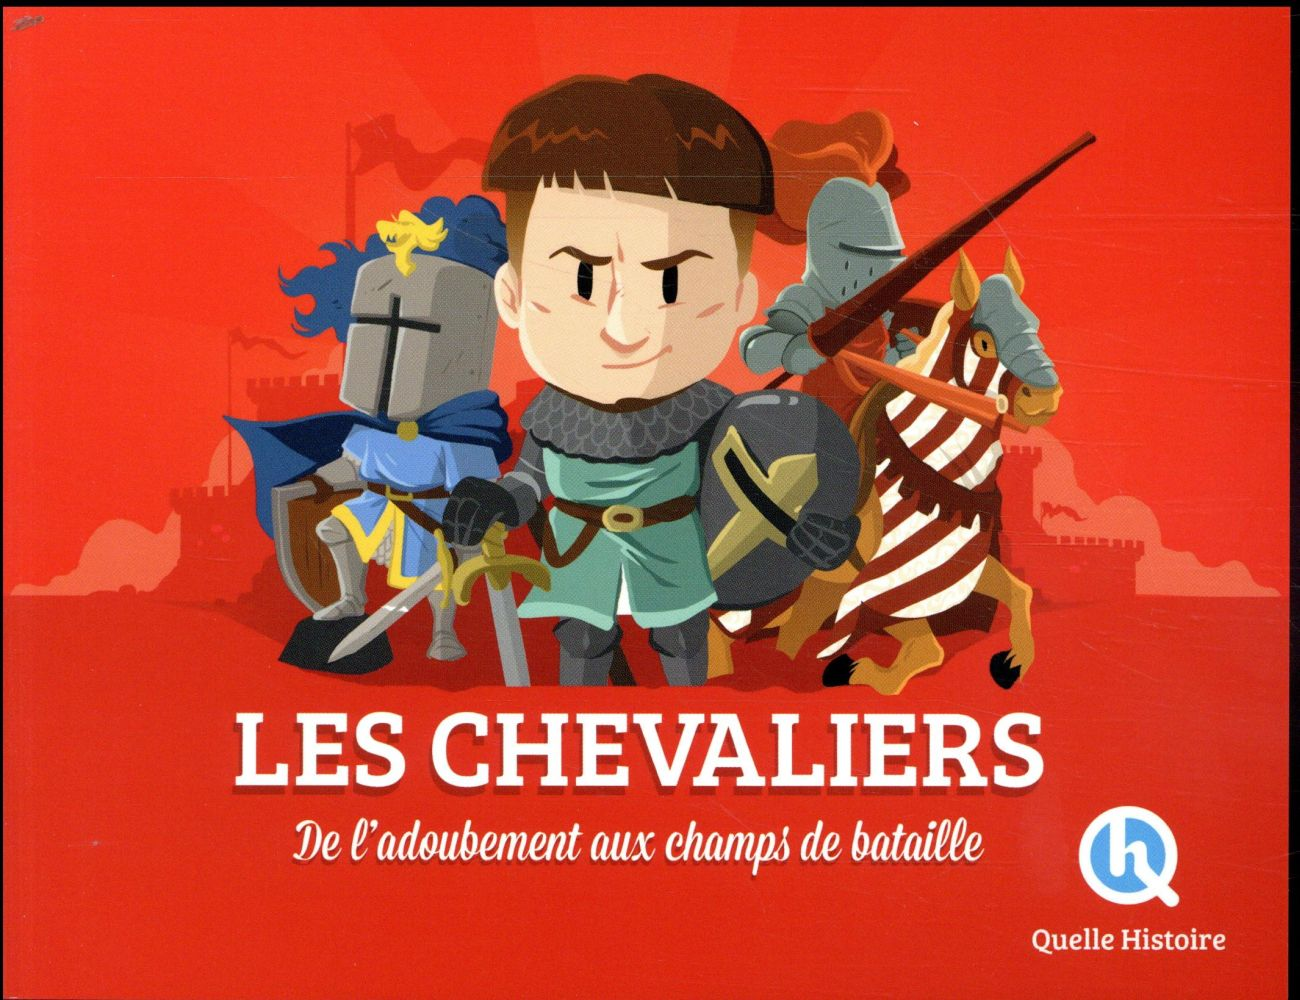 LES CHEVALIERS V. BARON/WENNAGEL